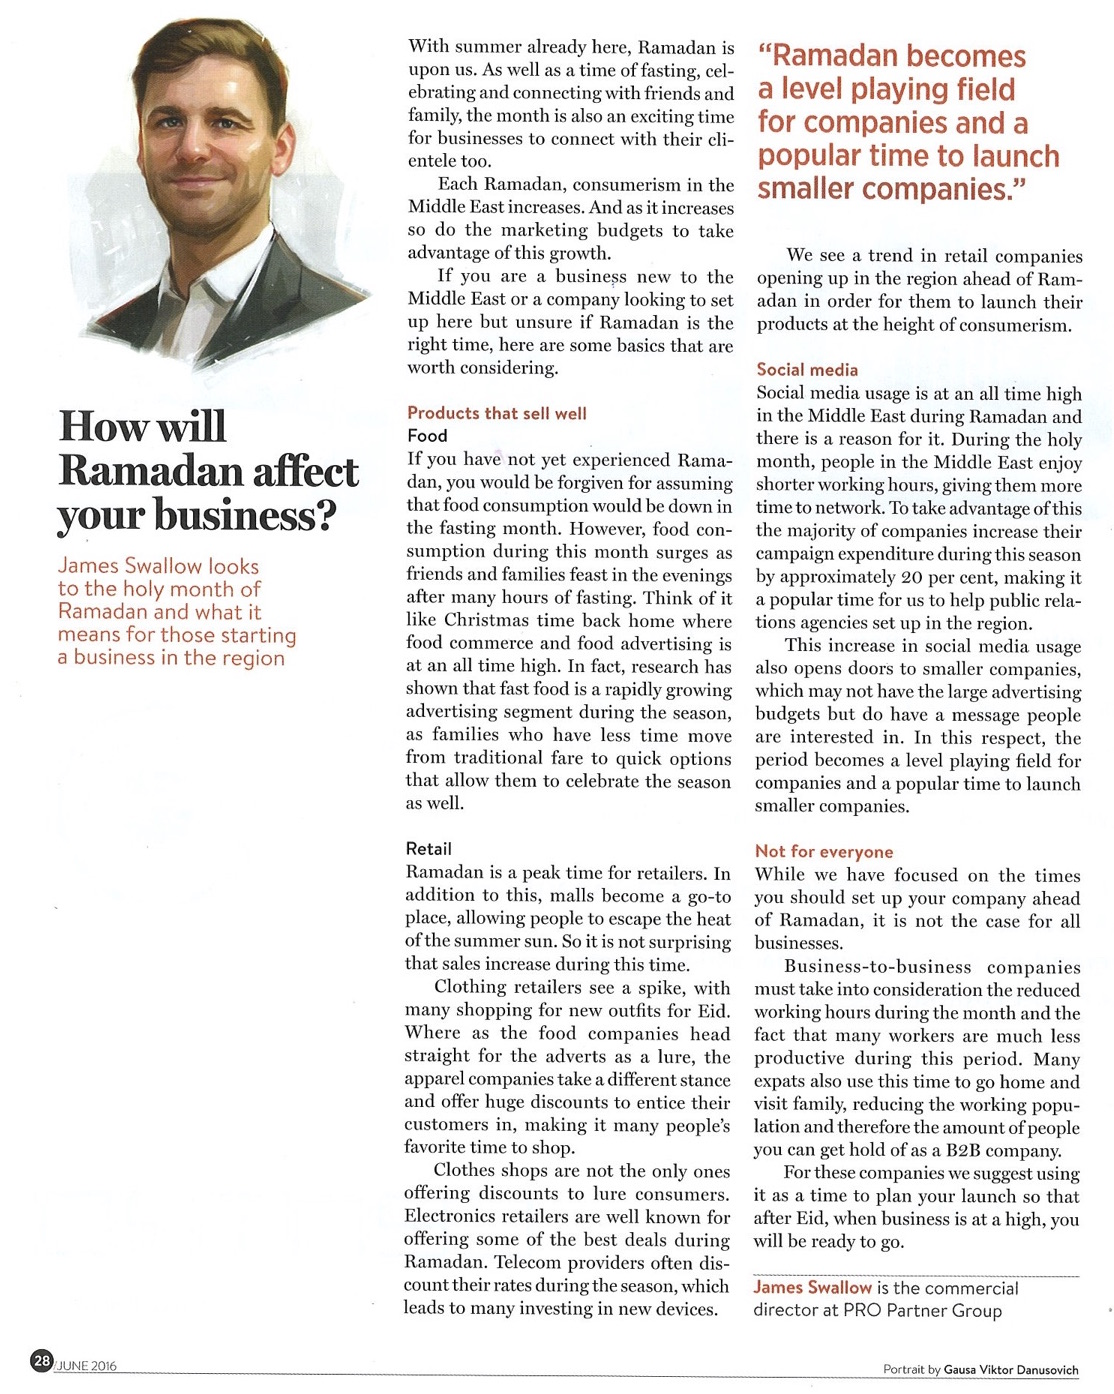 James Swallow speaks to Gulf Business Magazine about how Ramadan can affect business